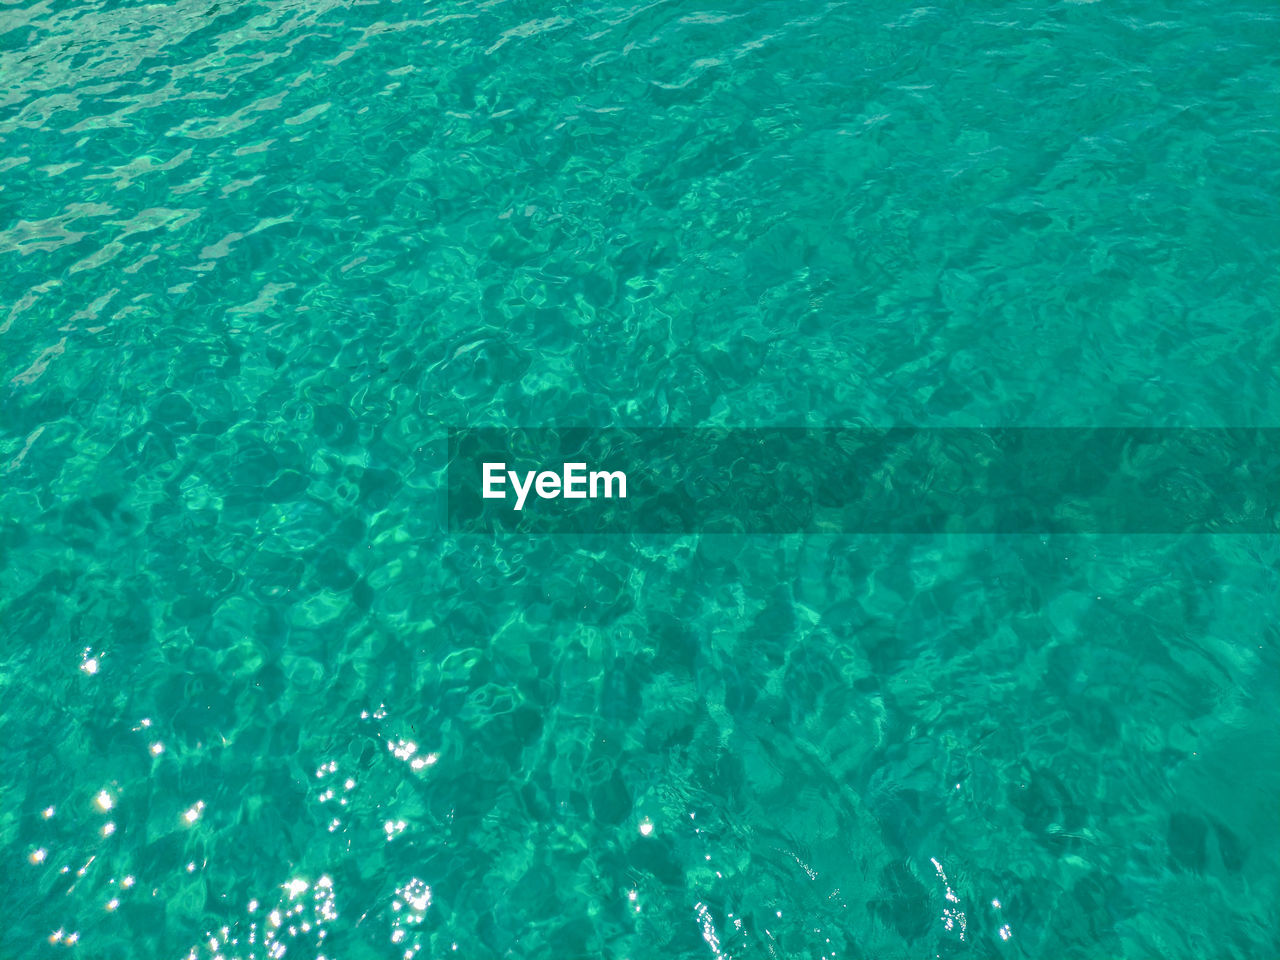 water, backgrounds, full frame, no people, blue, sea, turquoise colored, nature, rippled, day, beauty in nature, pattern, high angle view, outdoors, tranquility, tranquil scene, textured, waterfront, transparent, undersea, abstract, swimming pool, abstract backgrounds